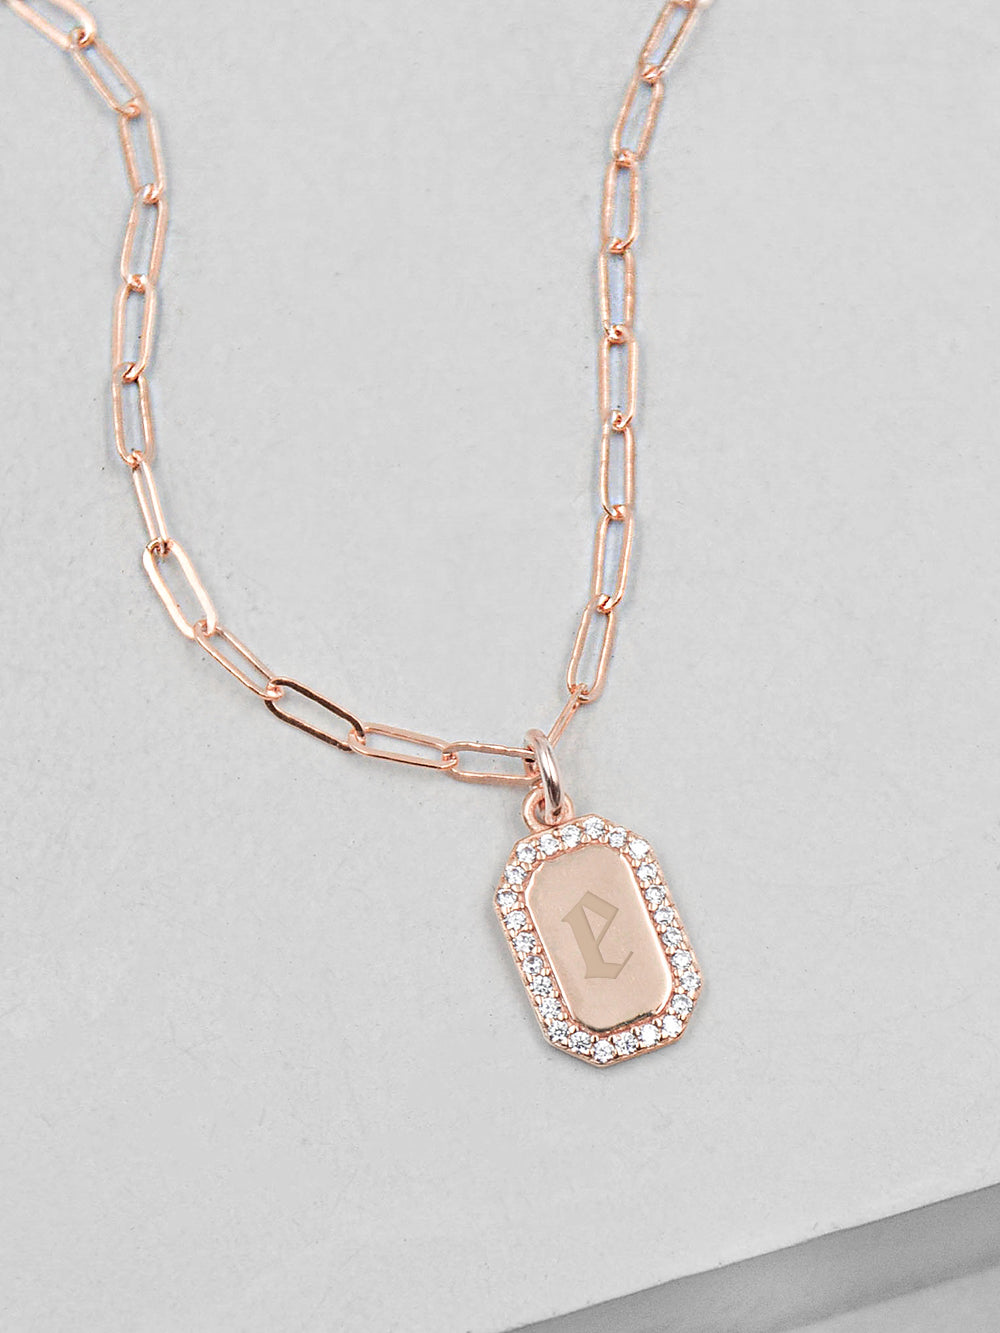 Mini CZ Initial Tag Paperclip Rose Gold Necklace by The Faint Hearted Jewelry